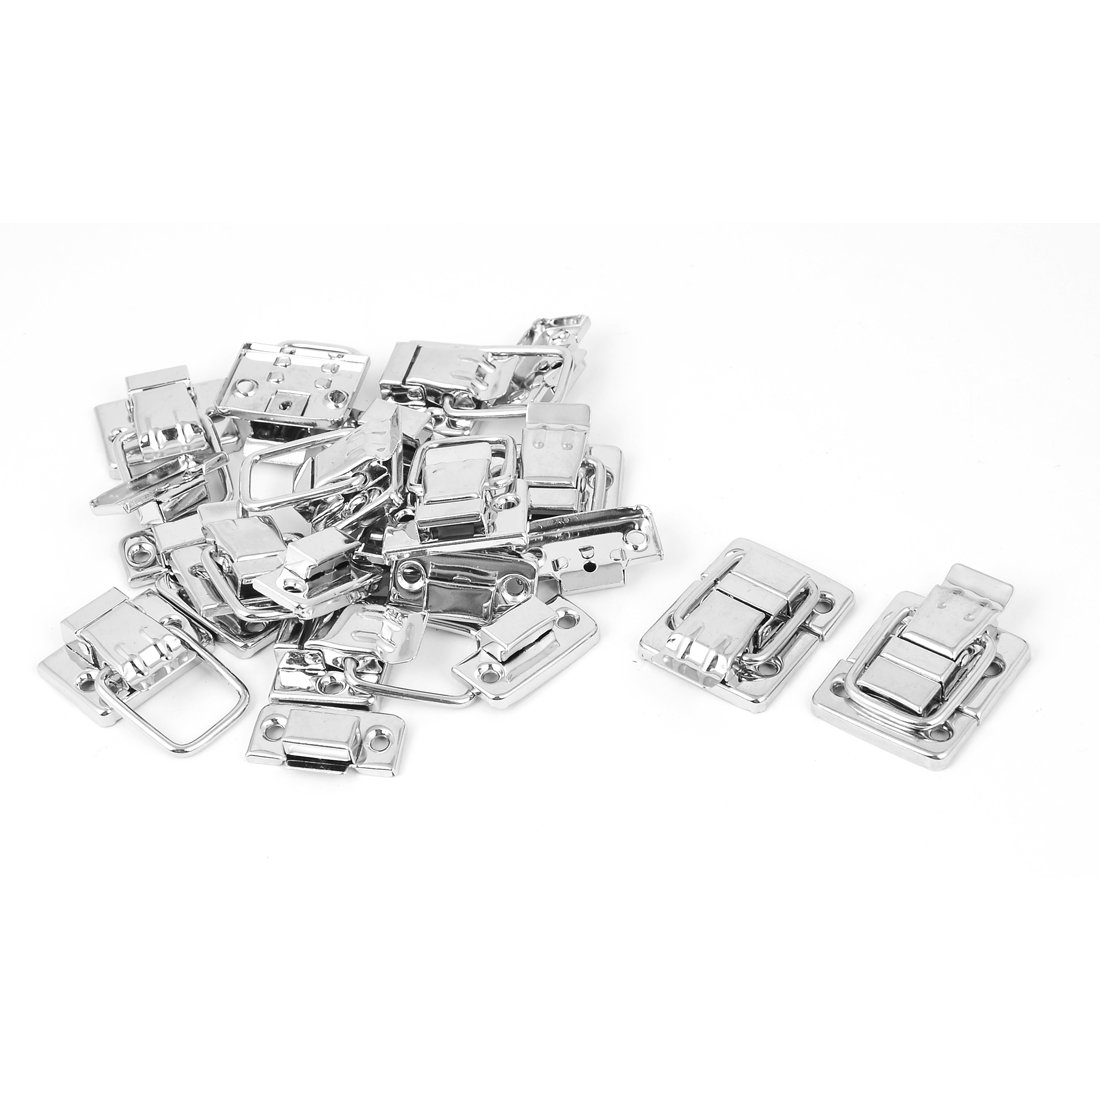 Uxcell a16010500ux0085 Toggle Latch Stainless steel Toggle Latch Clasp Silver Tone 12 Pcs For Box Suitcase